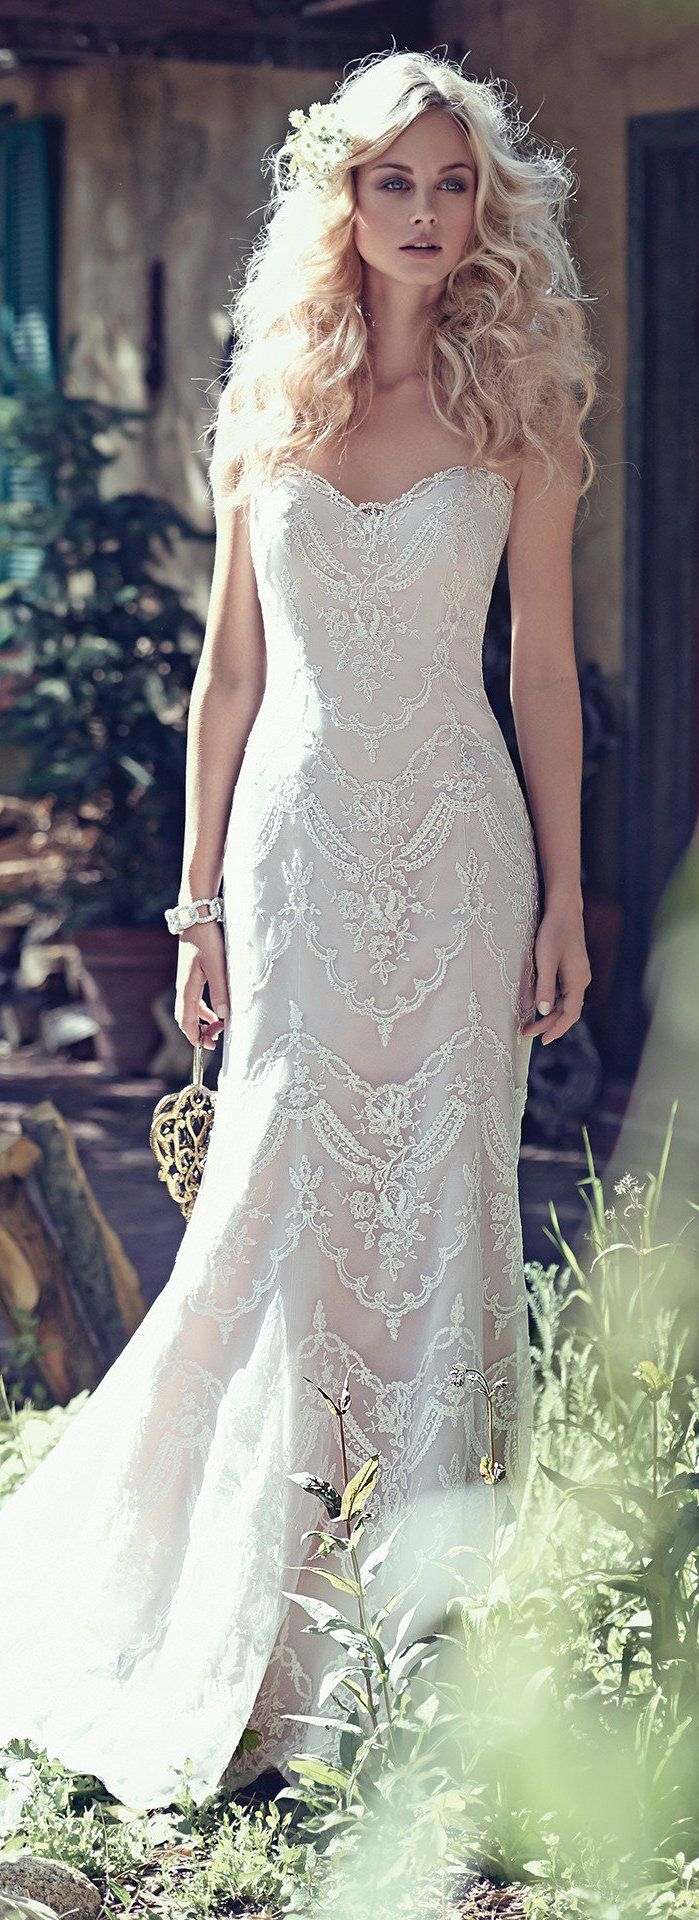 DRESS OF THE WEEK: Kirstie by Maggie Sottero